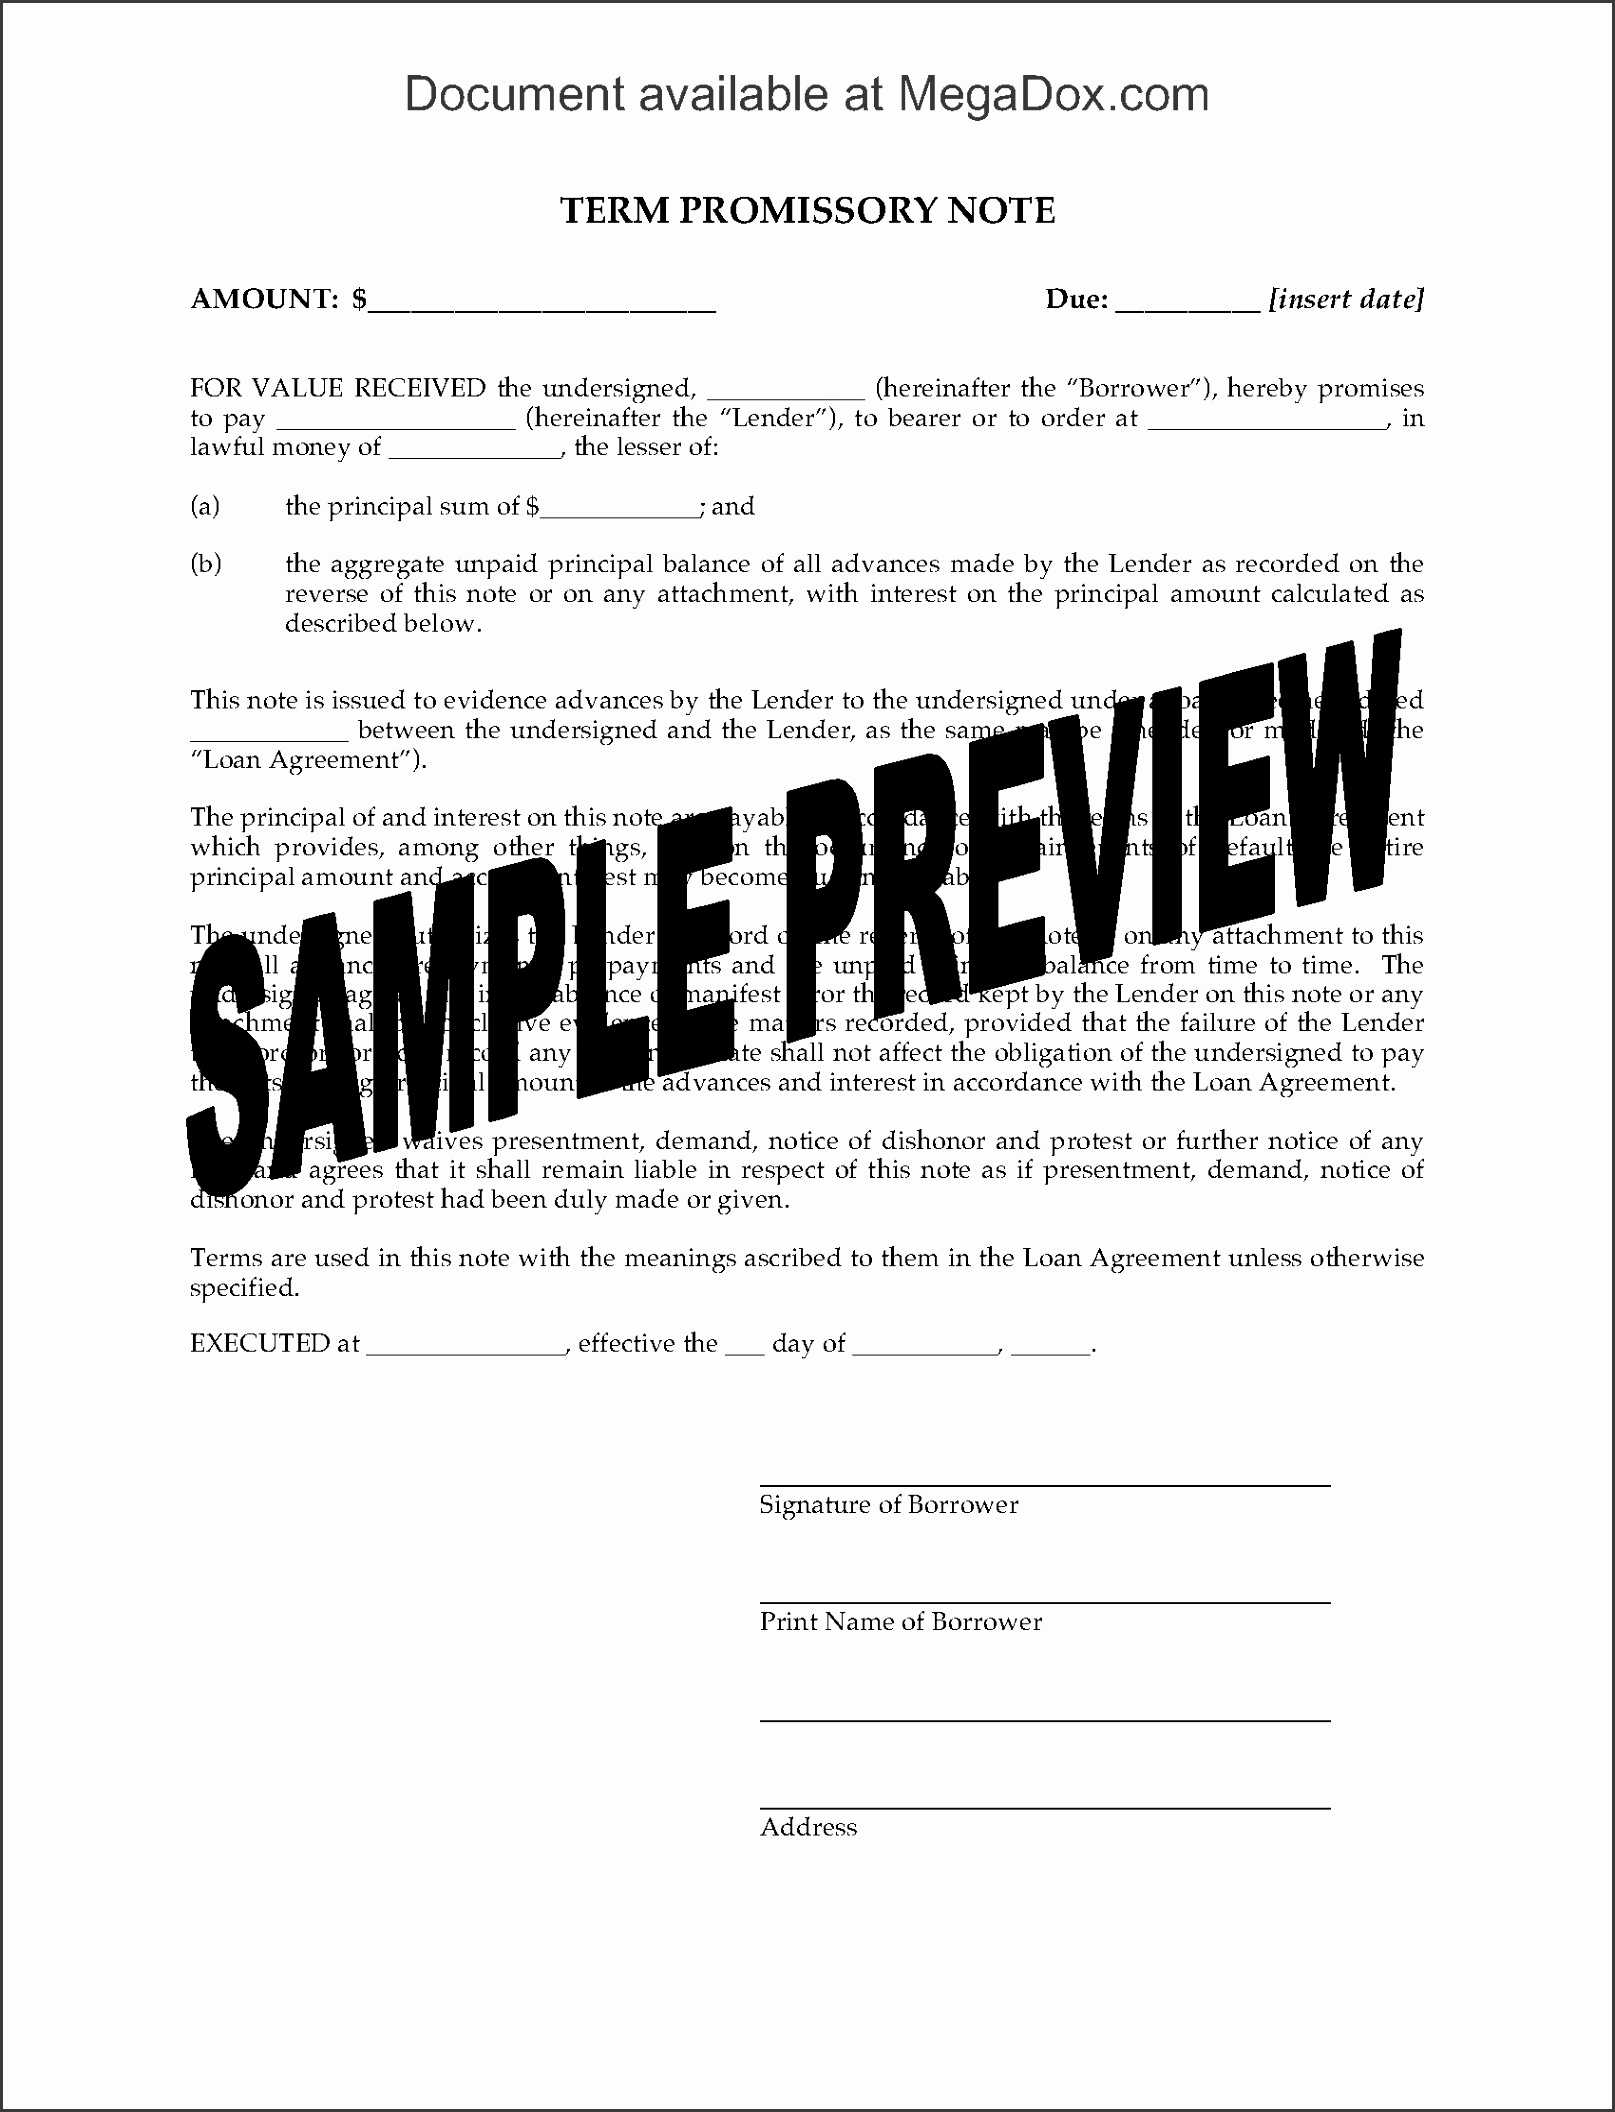 Picture of Grid Promissory Note for Multiple Loan Advances